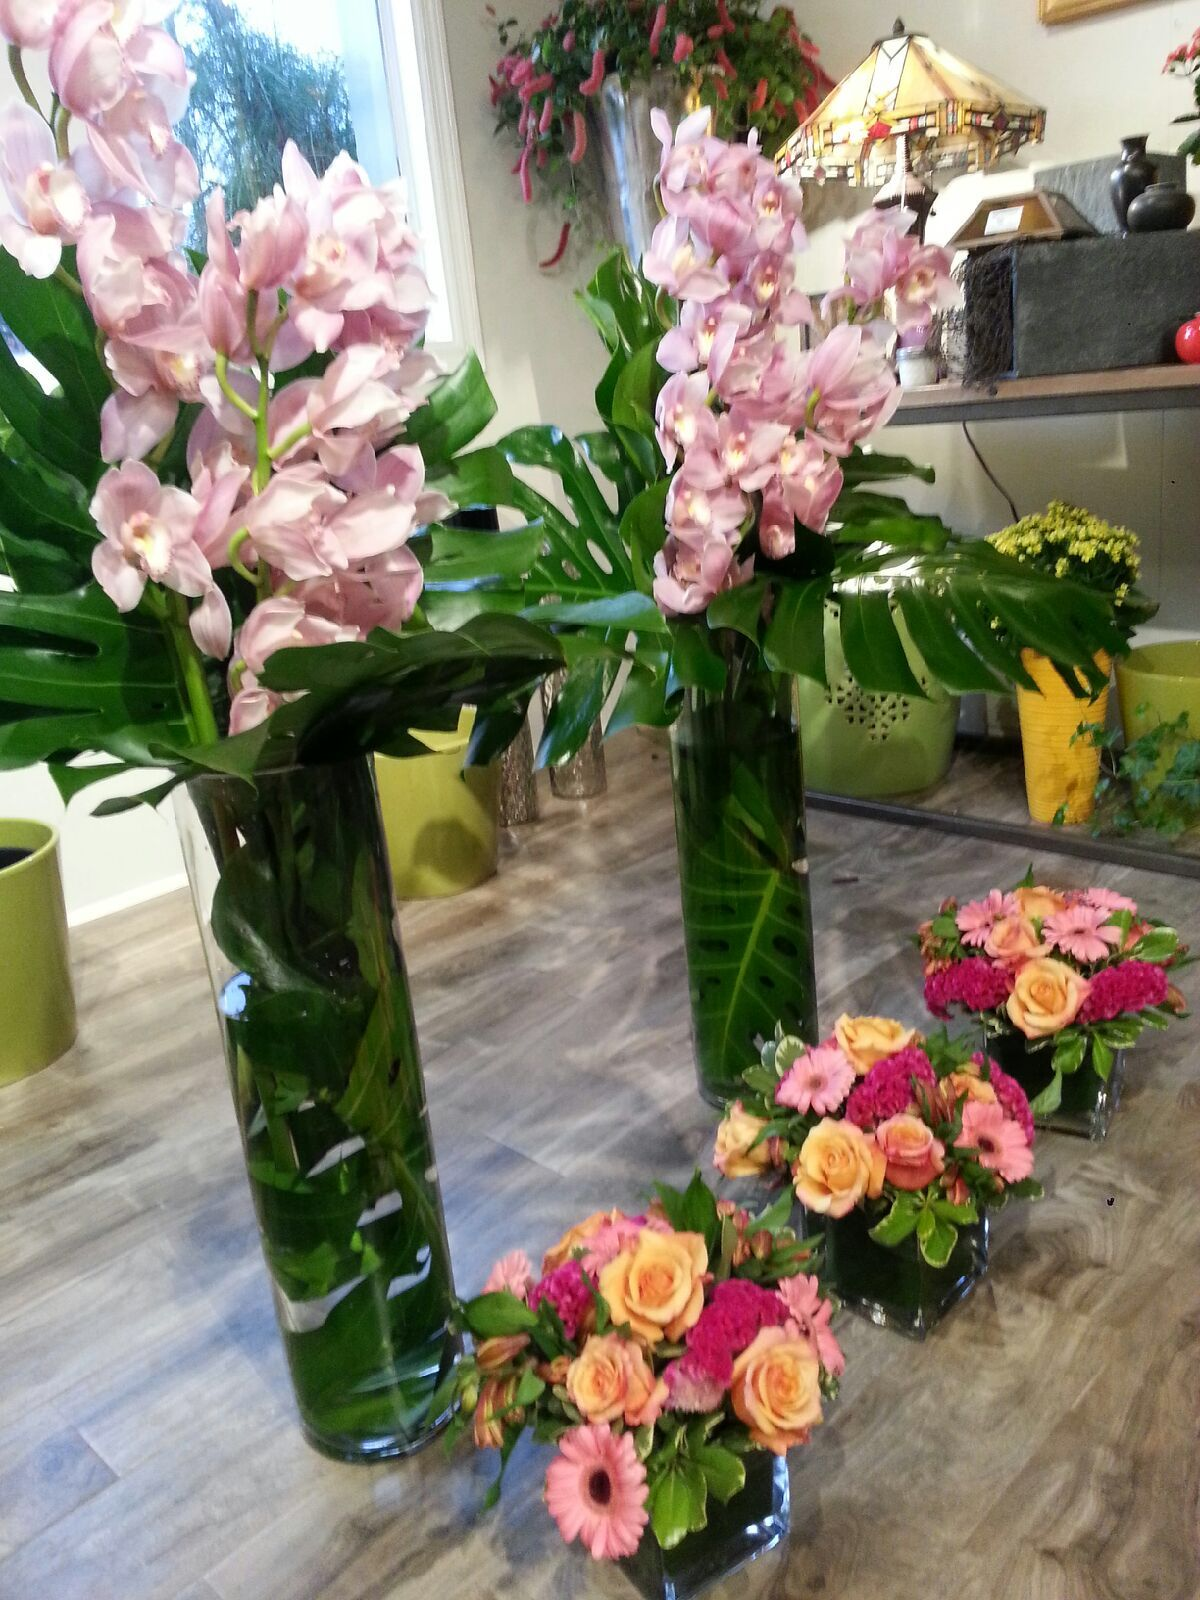 Tall cymbidium orchid vases with complimenting cube arrangements